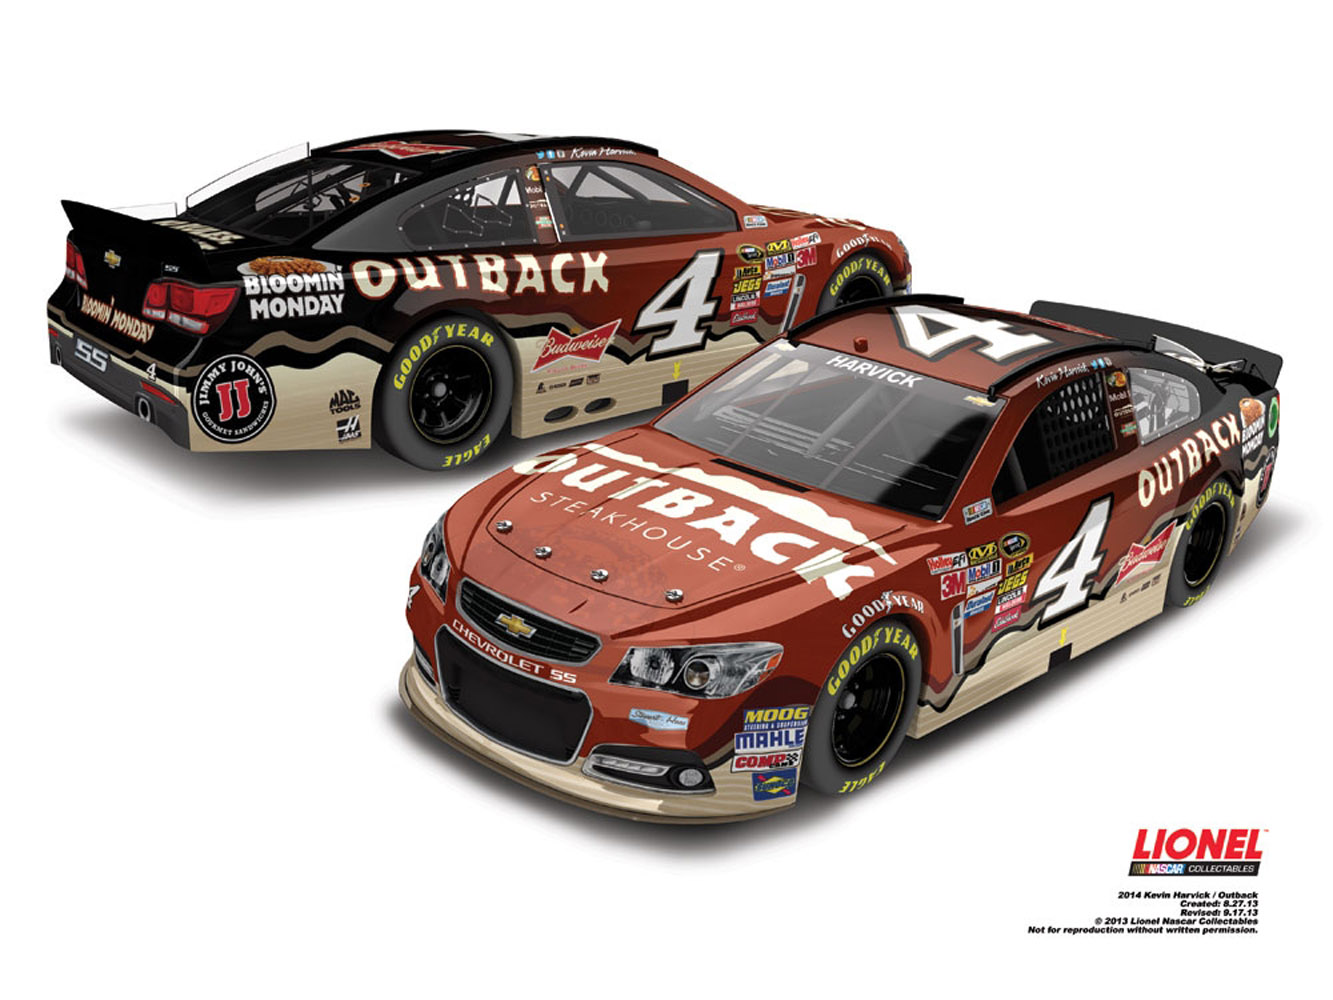 2014 Kevin Harvick #4 Outback 1:64 Diecast Car